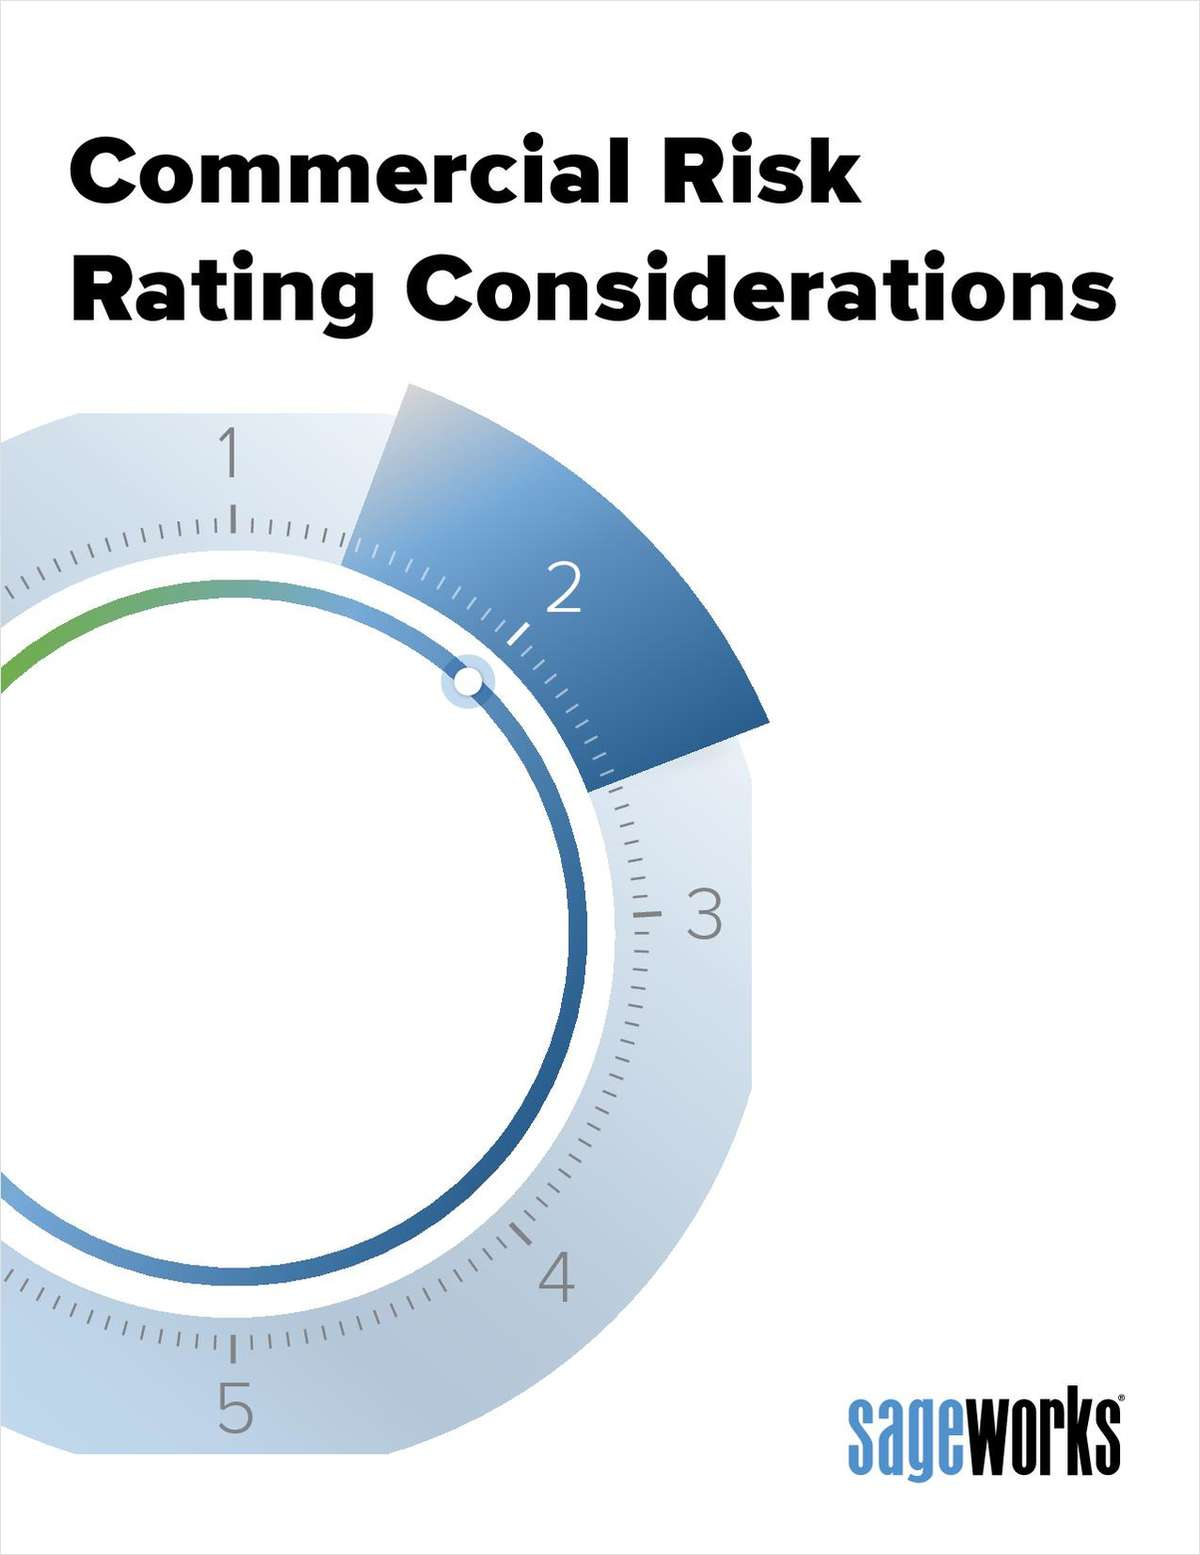 Commercial Risk Rating Considerations